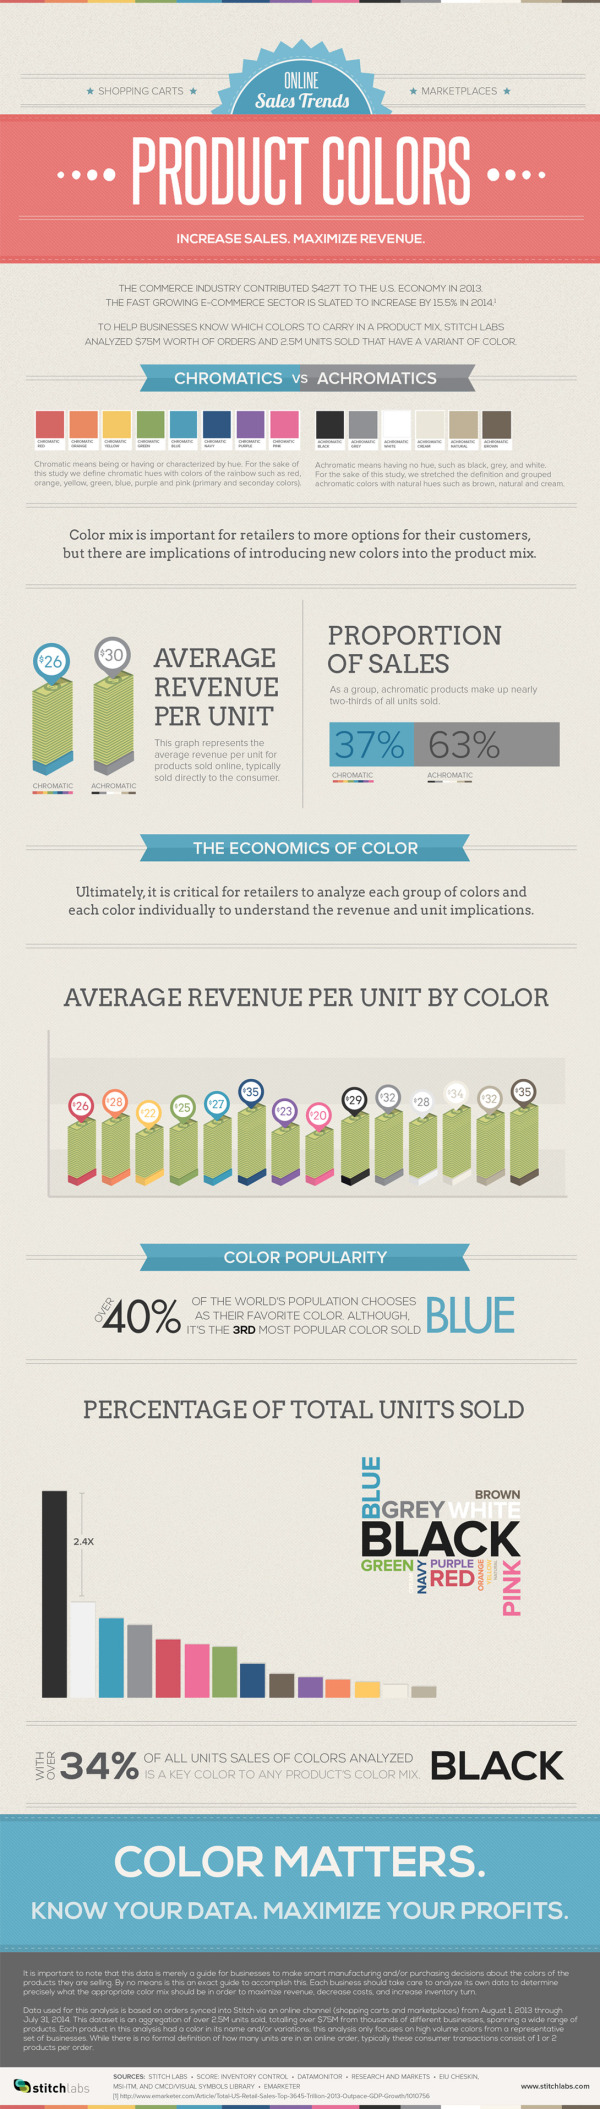 Online Sales Trends - Color Matters infographic